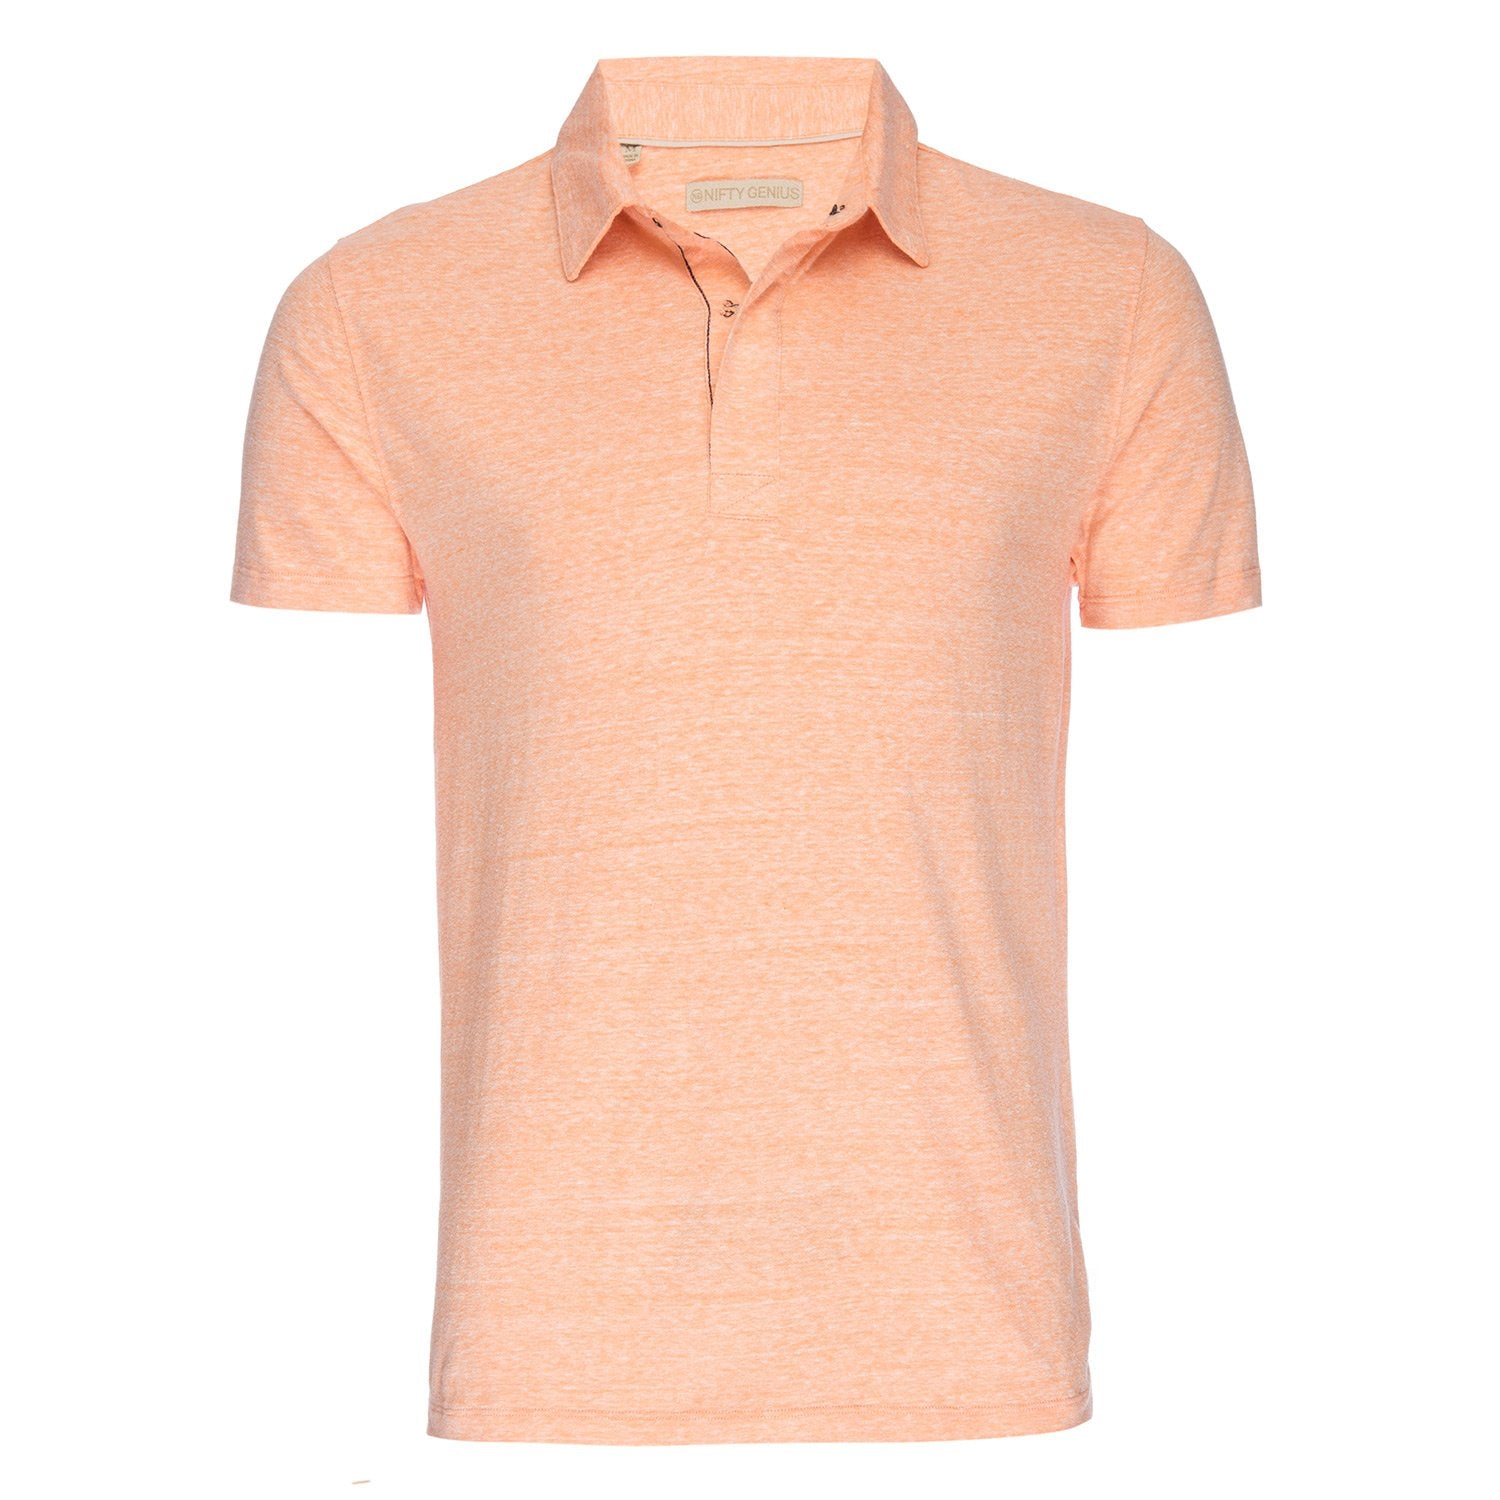 Nicholas Recycled Cotton/Poly Polo in Orange